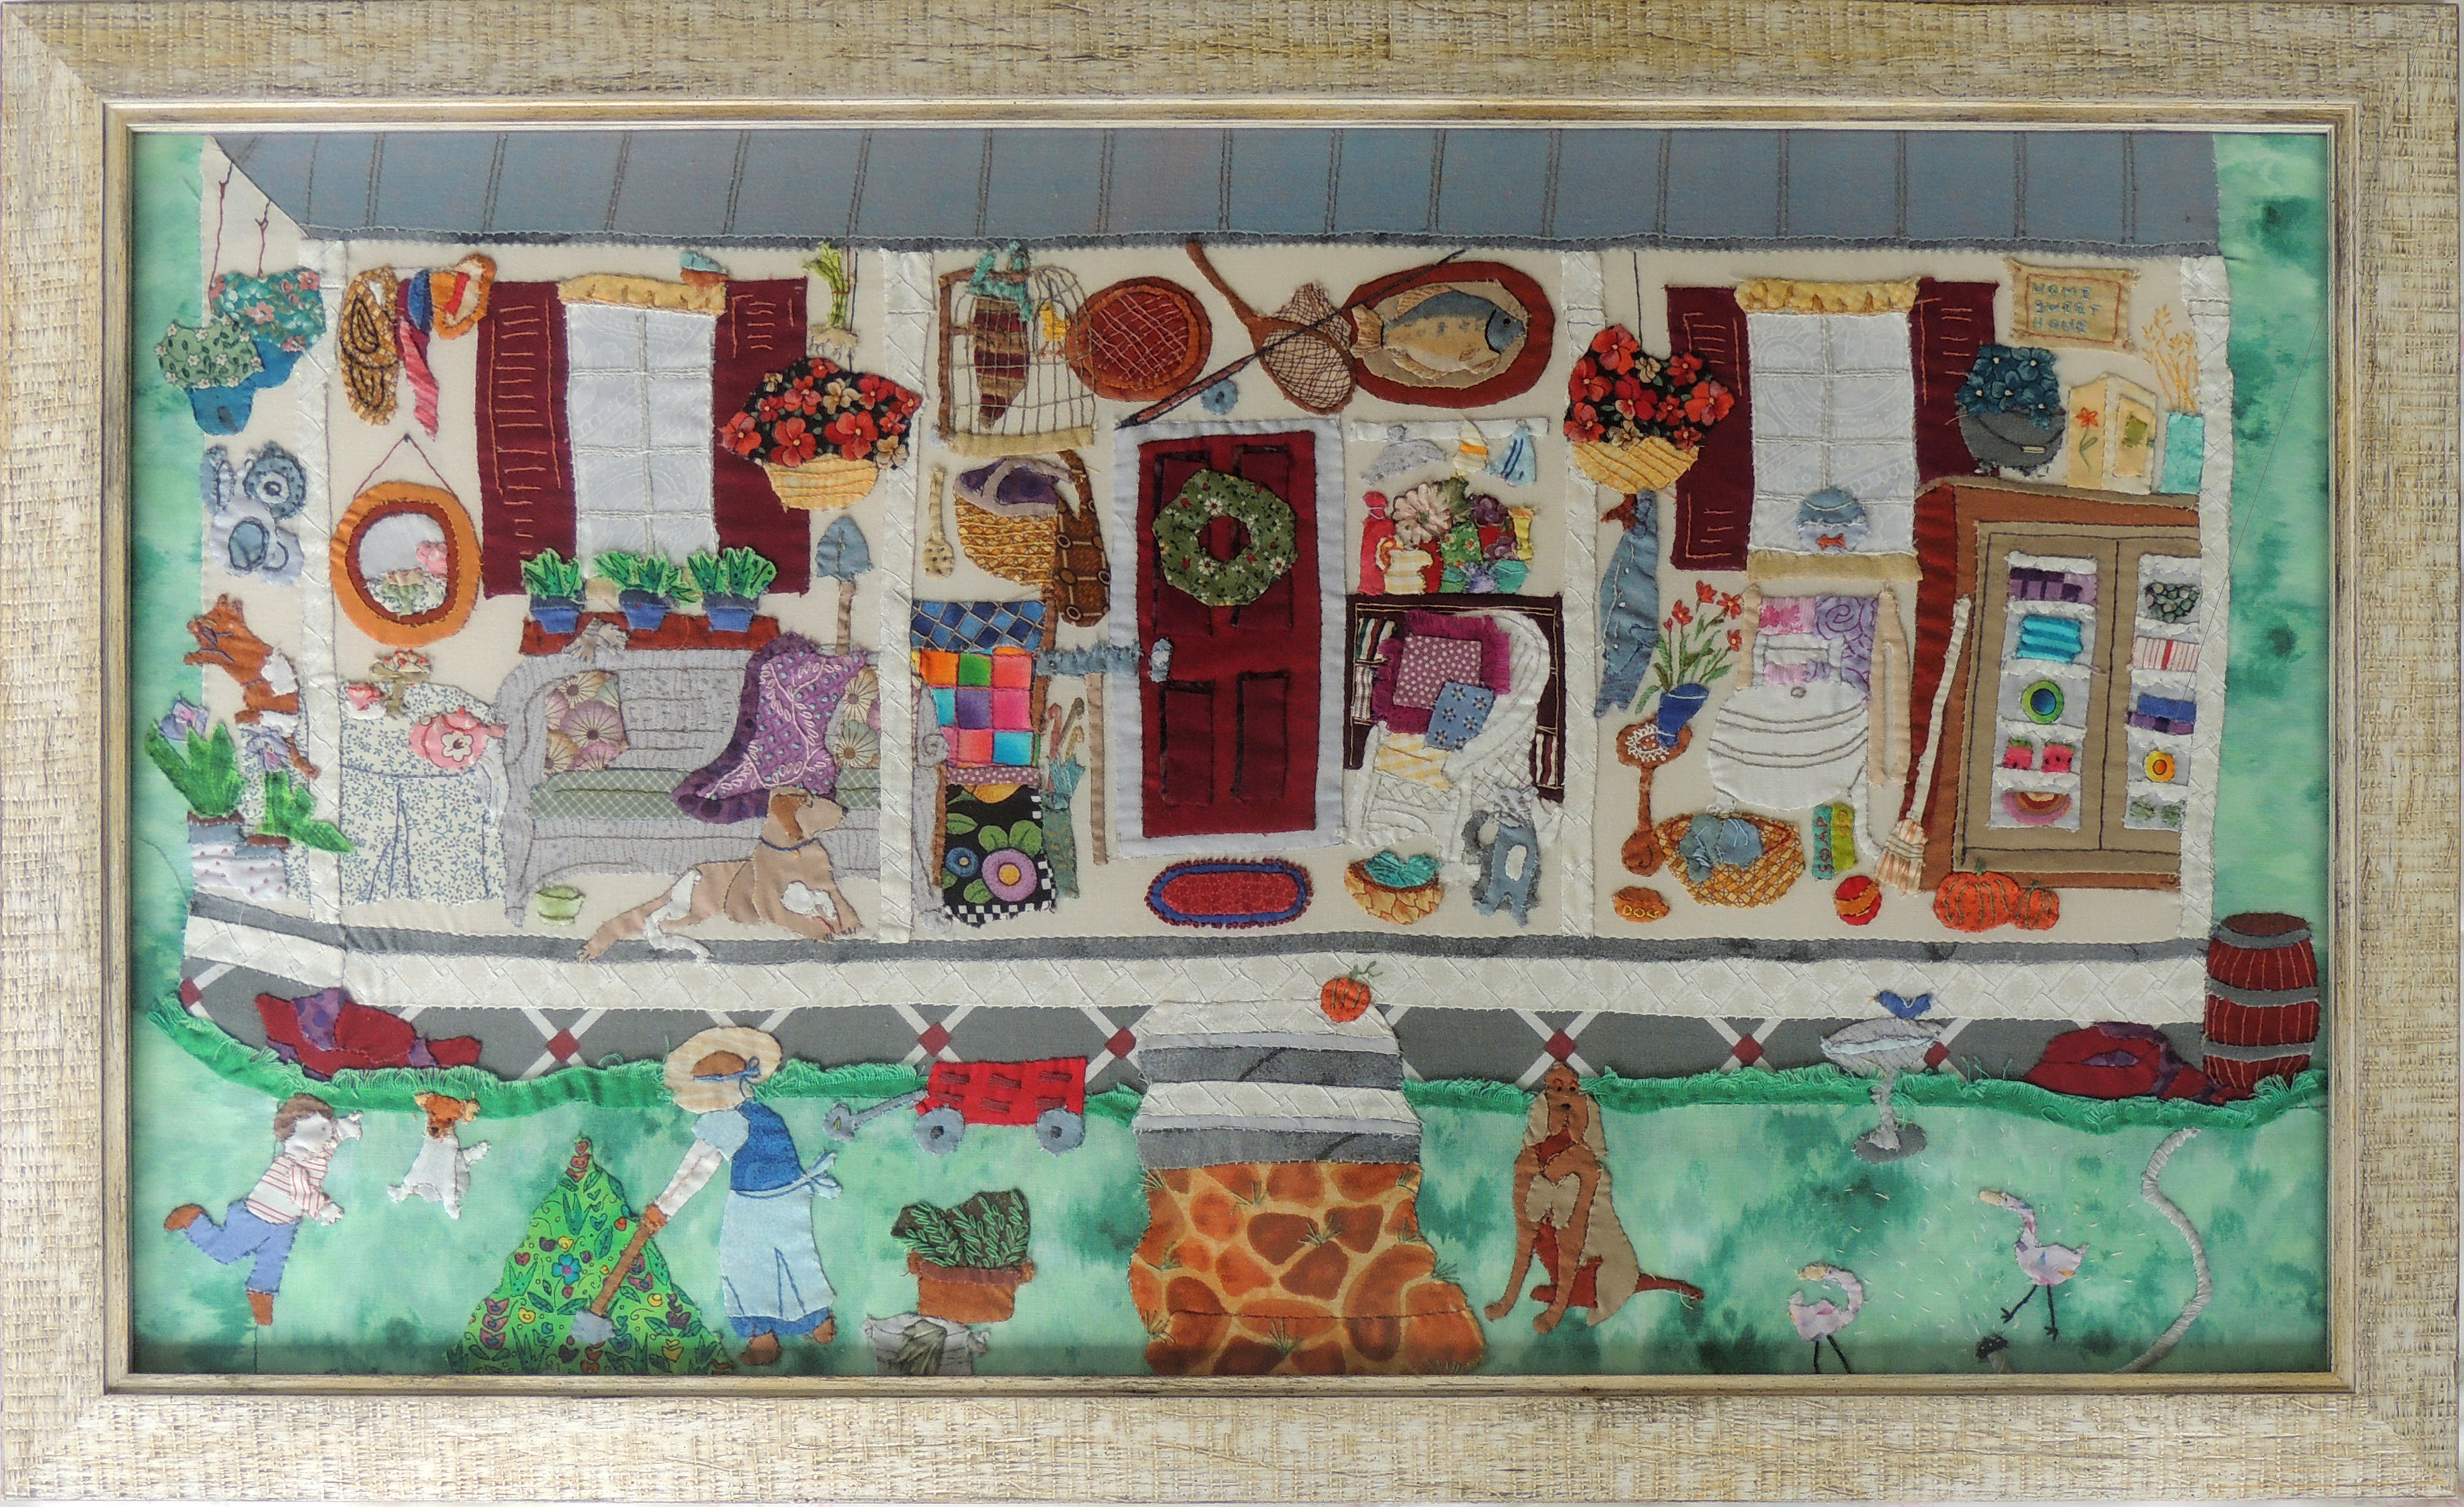 Marianne Rabb Britton | MY OLD KENTUCKY HOME | Fabric & Embroidery | 16.5 x 26.5"